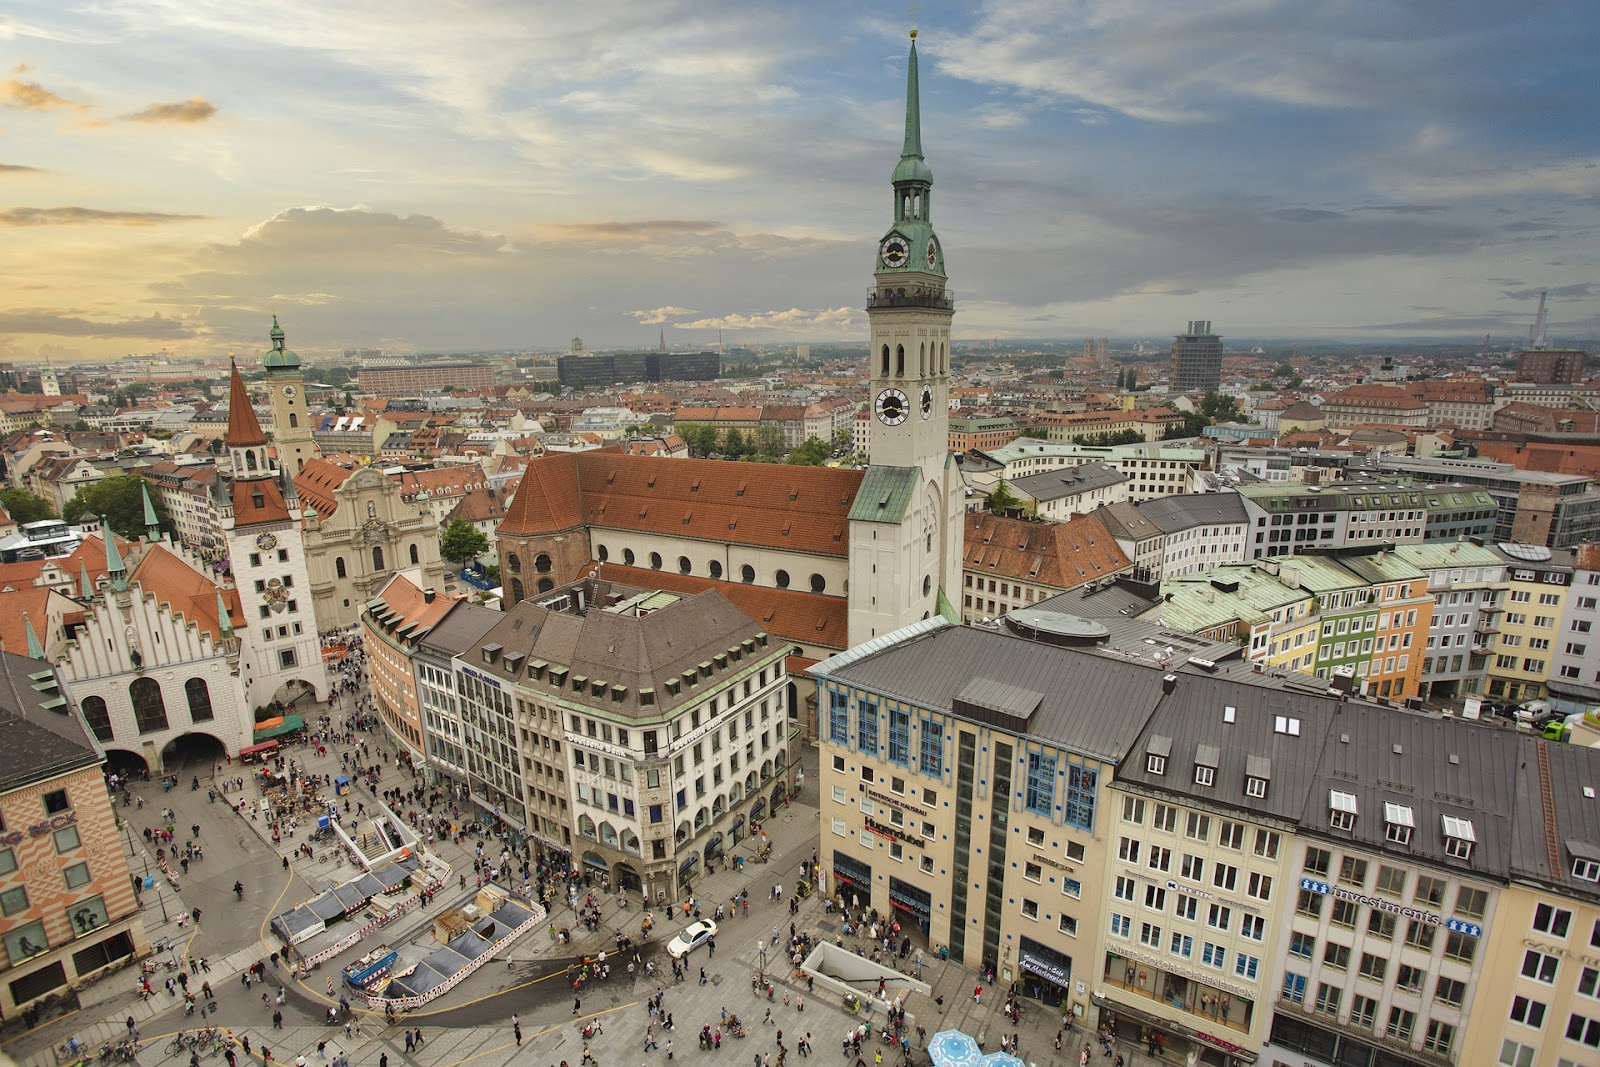 munich old town medieval church seen from above next to traditional bavarian buildings on a cloudy day germany. Enjoy the best day trips in Munich with Rentalmoose